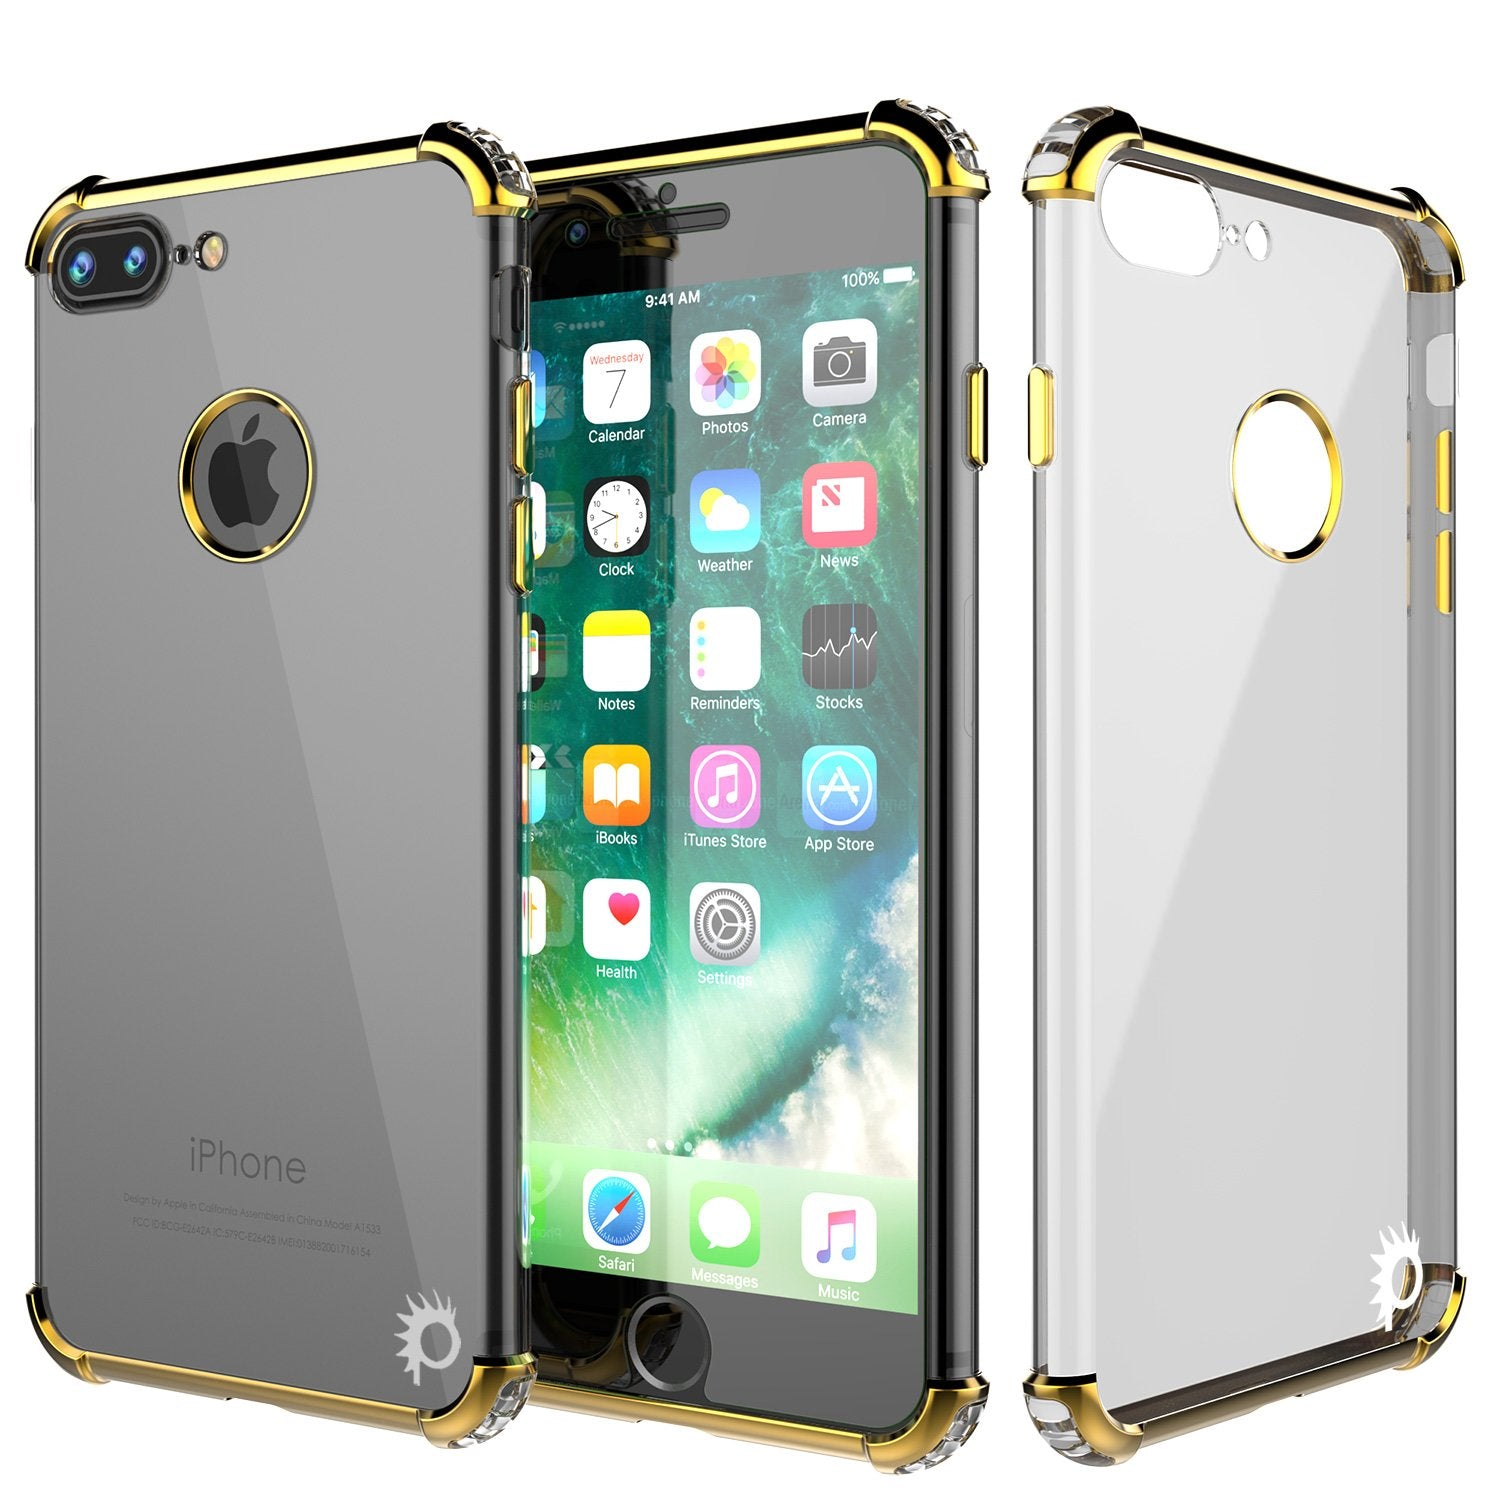 iPhone 8 PLUS Case, Punkcase BLAZE RoseGold Series Protective Cover W/ PunkShield Screen Protector